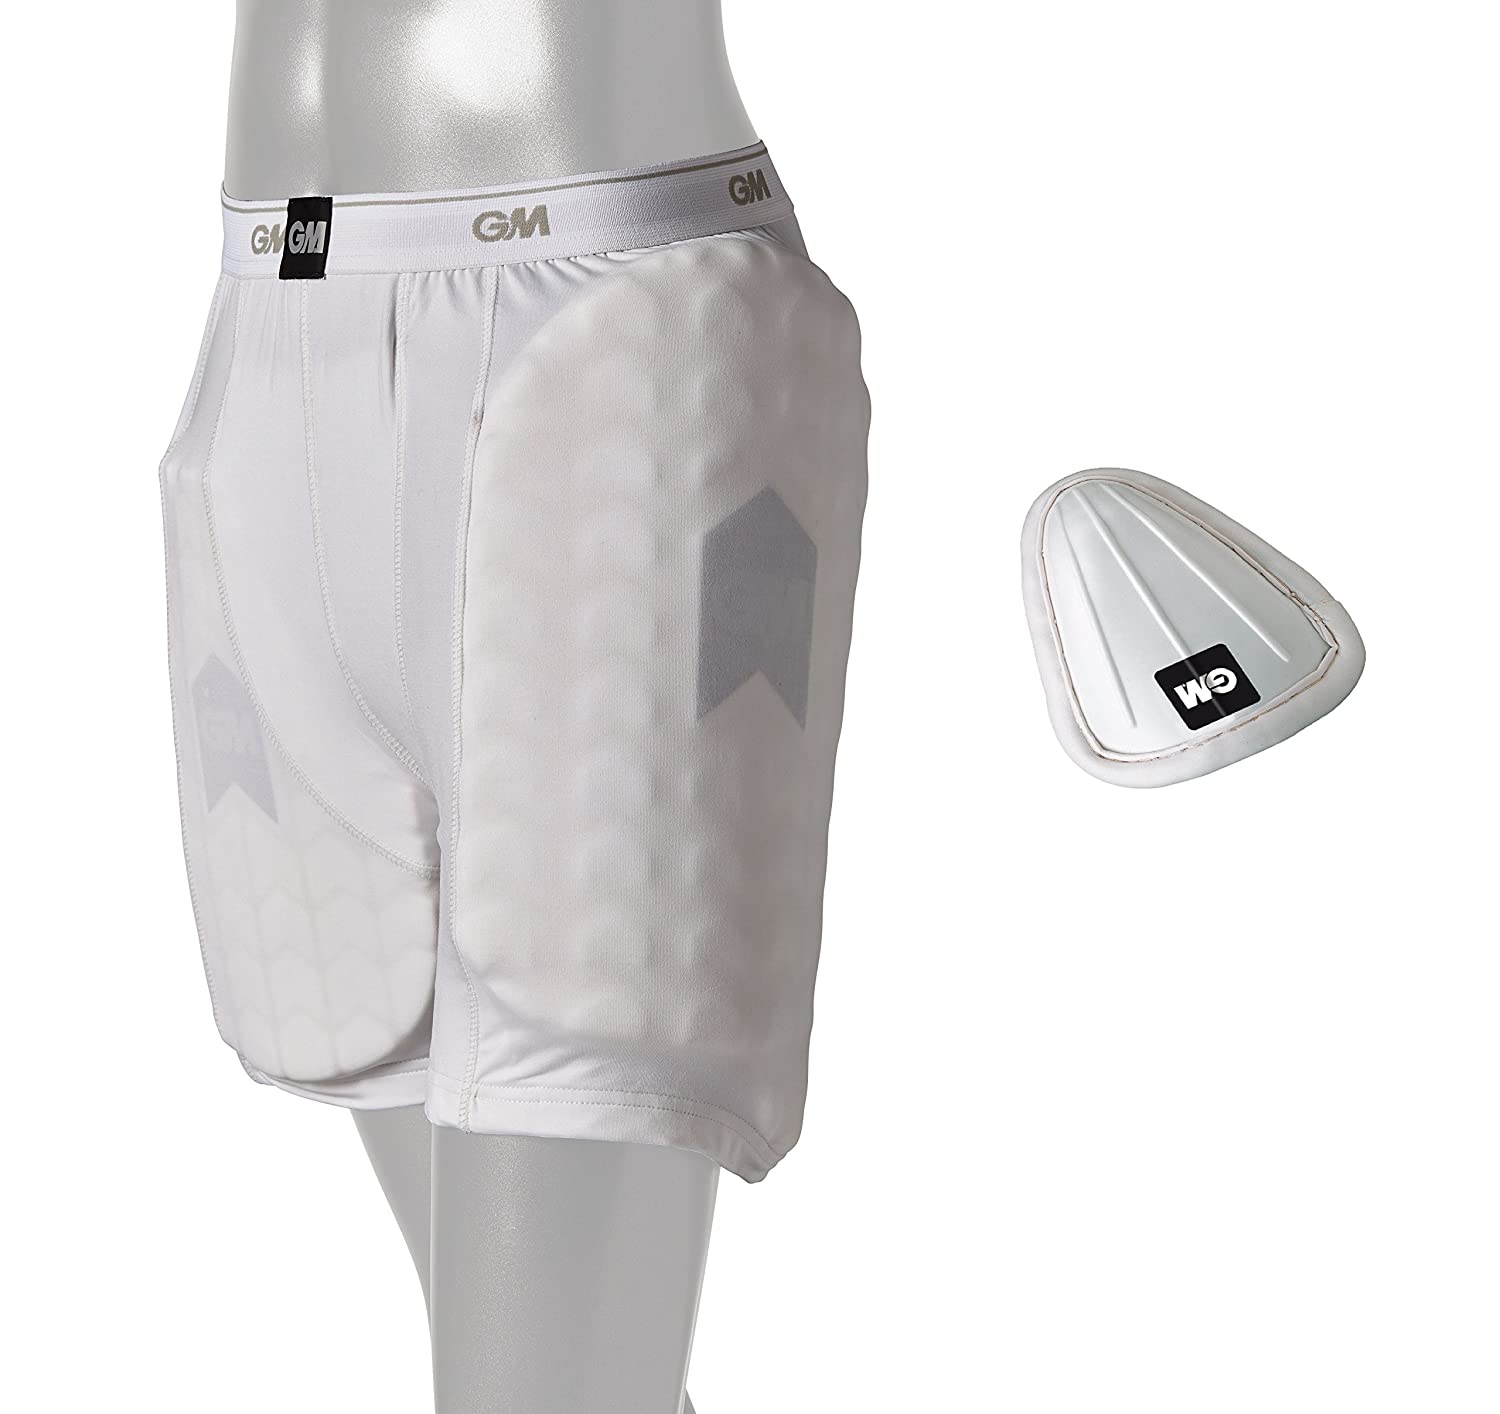 GM Cricket 909 Shorts with Protective Padding Set (Left & Right) and Abdominal Guard ' Men's Size   B07BB2WW3S